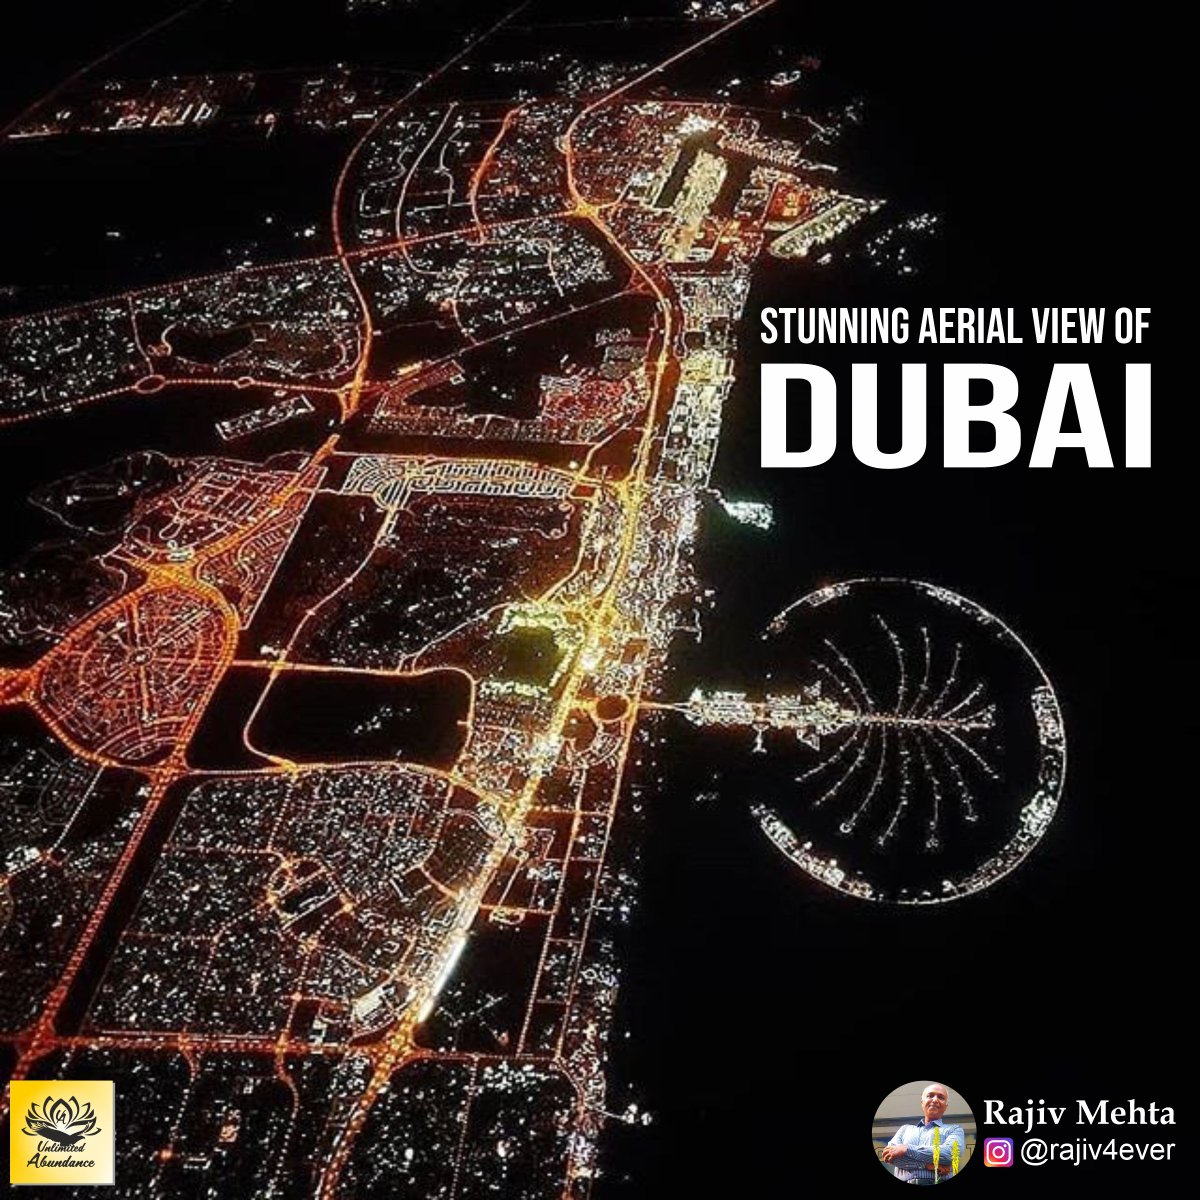 Stunning aerial view of Dubai.  #image #photography #photo #love #instagram #picture #photographer #photooftheday #like #instagood #follow #picoftheday #beautiful #pic #beauty #dubai https://t.co/8hUl68zMh4